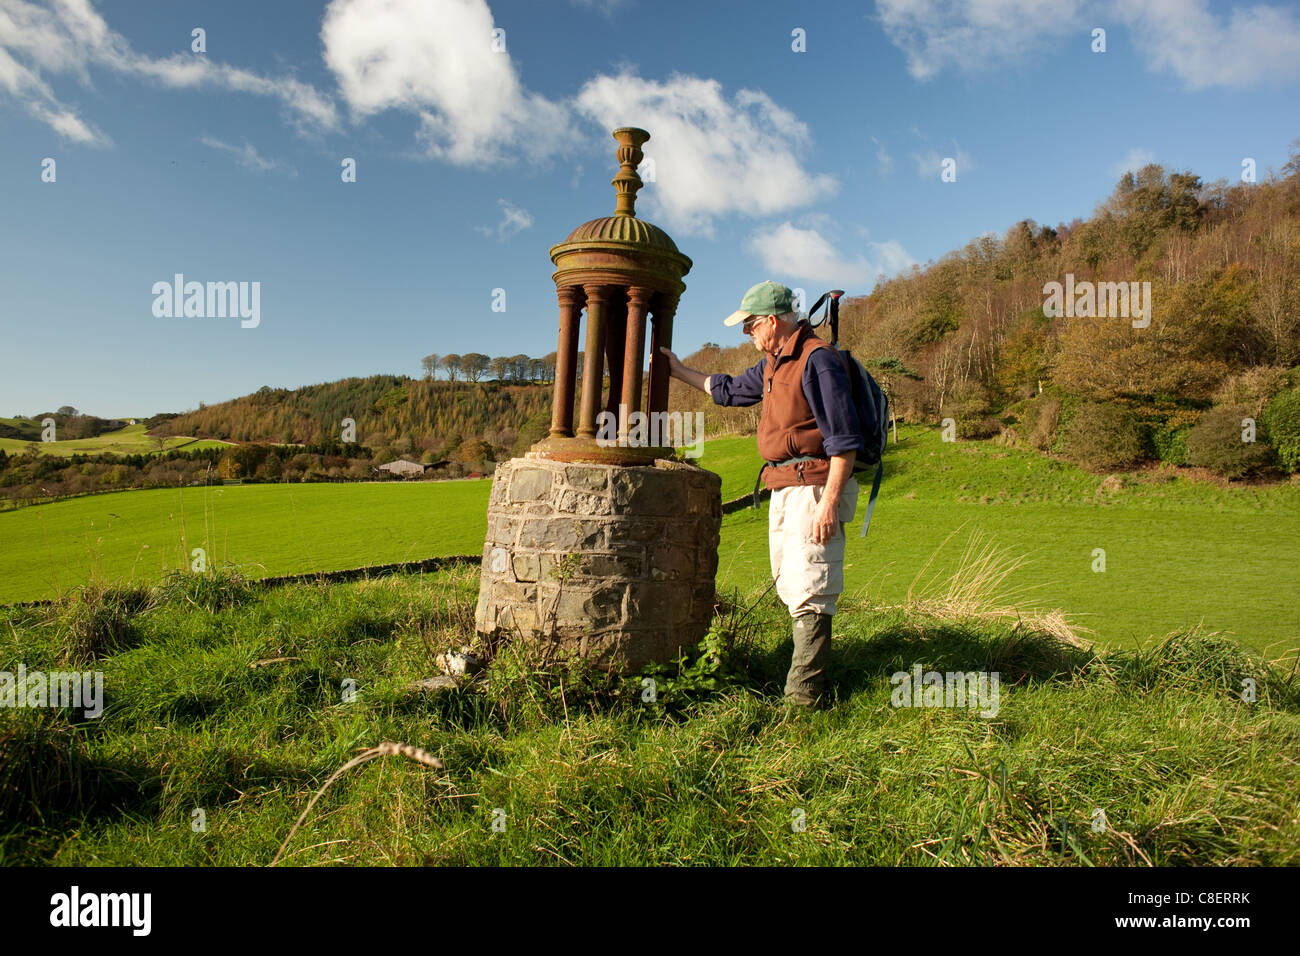 Autumn Galloway Scotland monument on Queen's Hill where Mary Queen of Scots rested on her flight to England - Stock Image